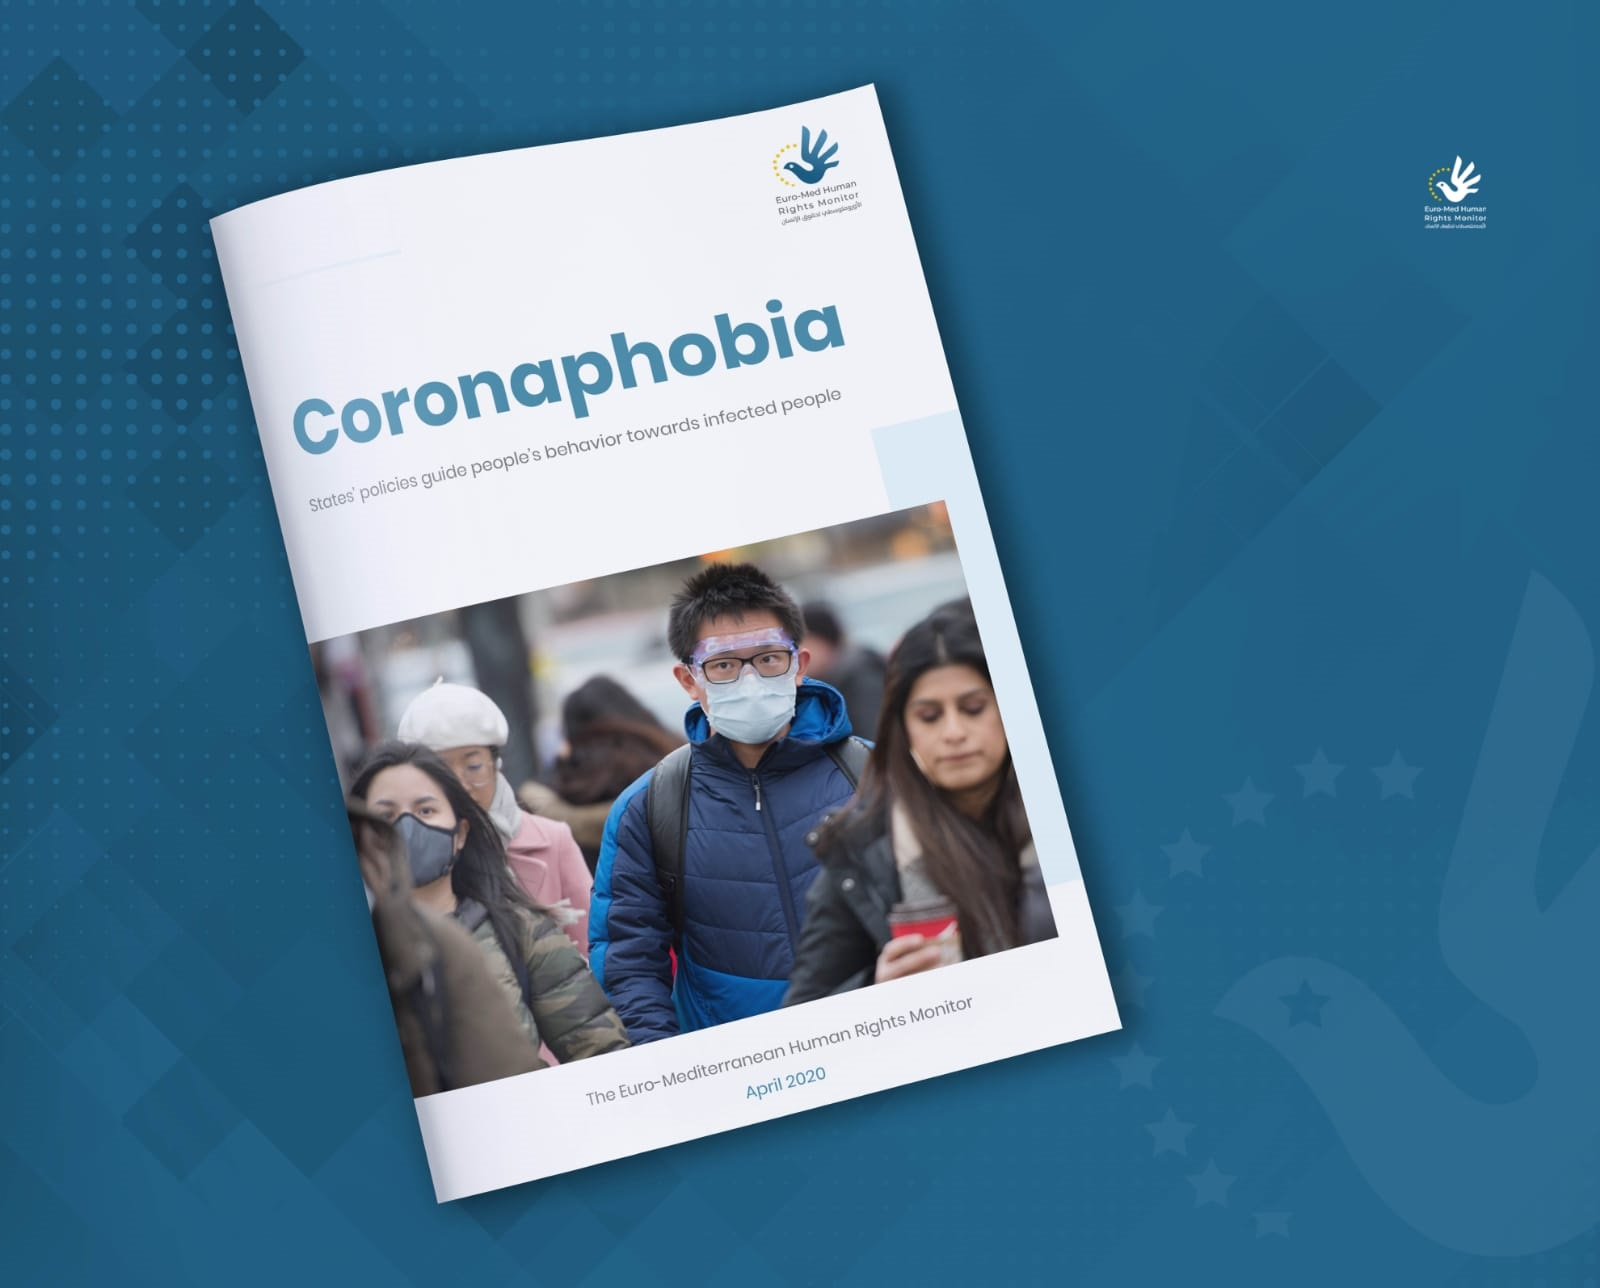 Report: Xenophobic bullying rages during  coronavirus pandemic